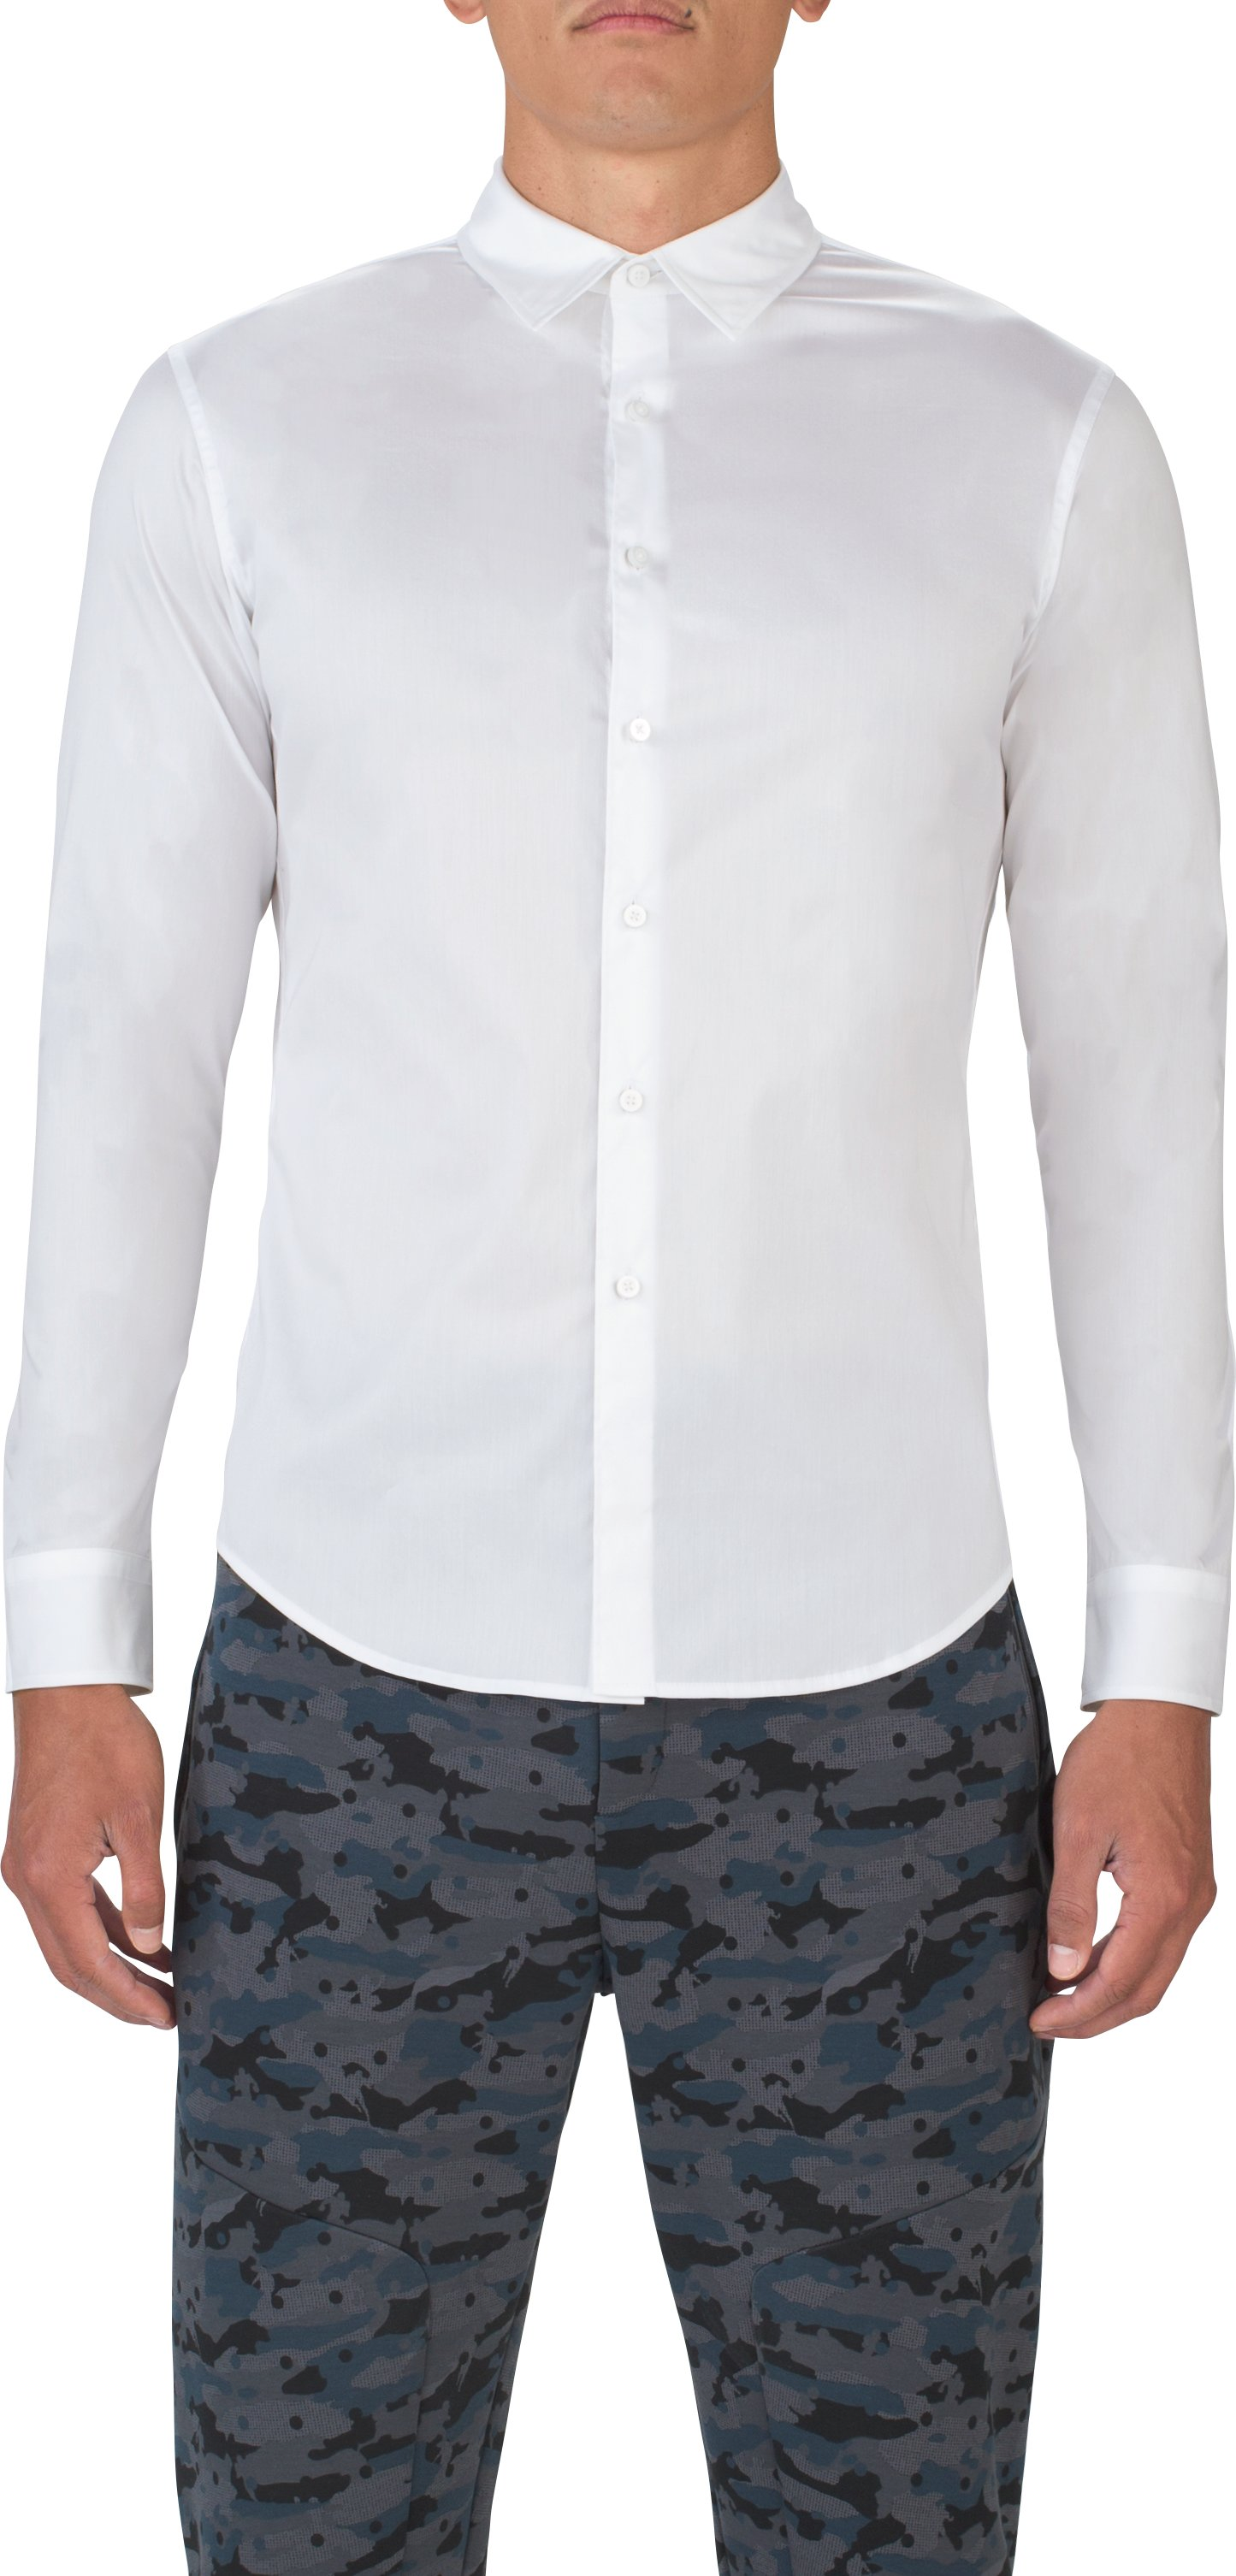 Men's UAS Draftday Solid Dress Shirt, White